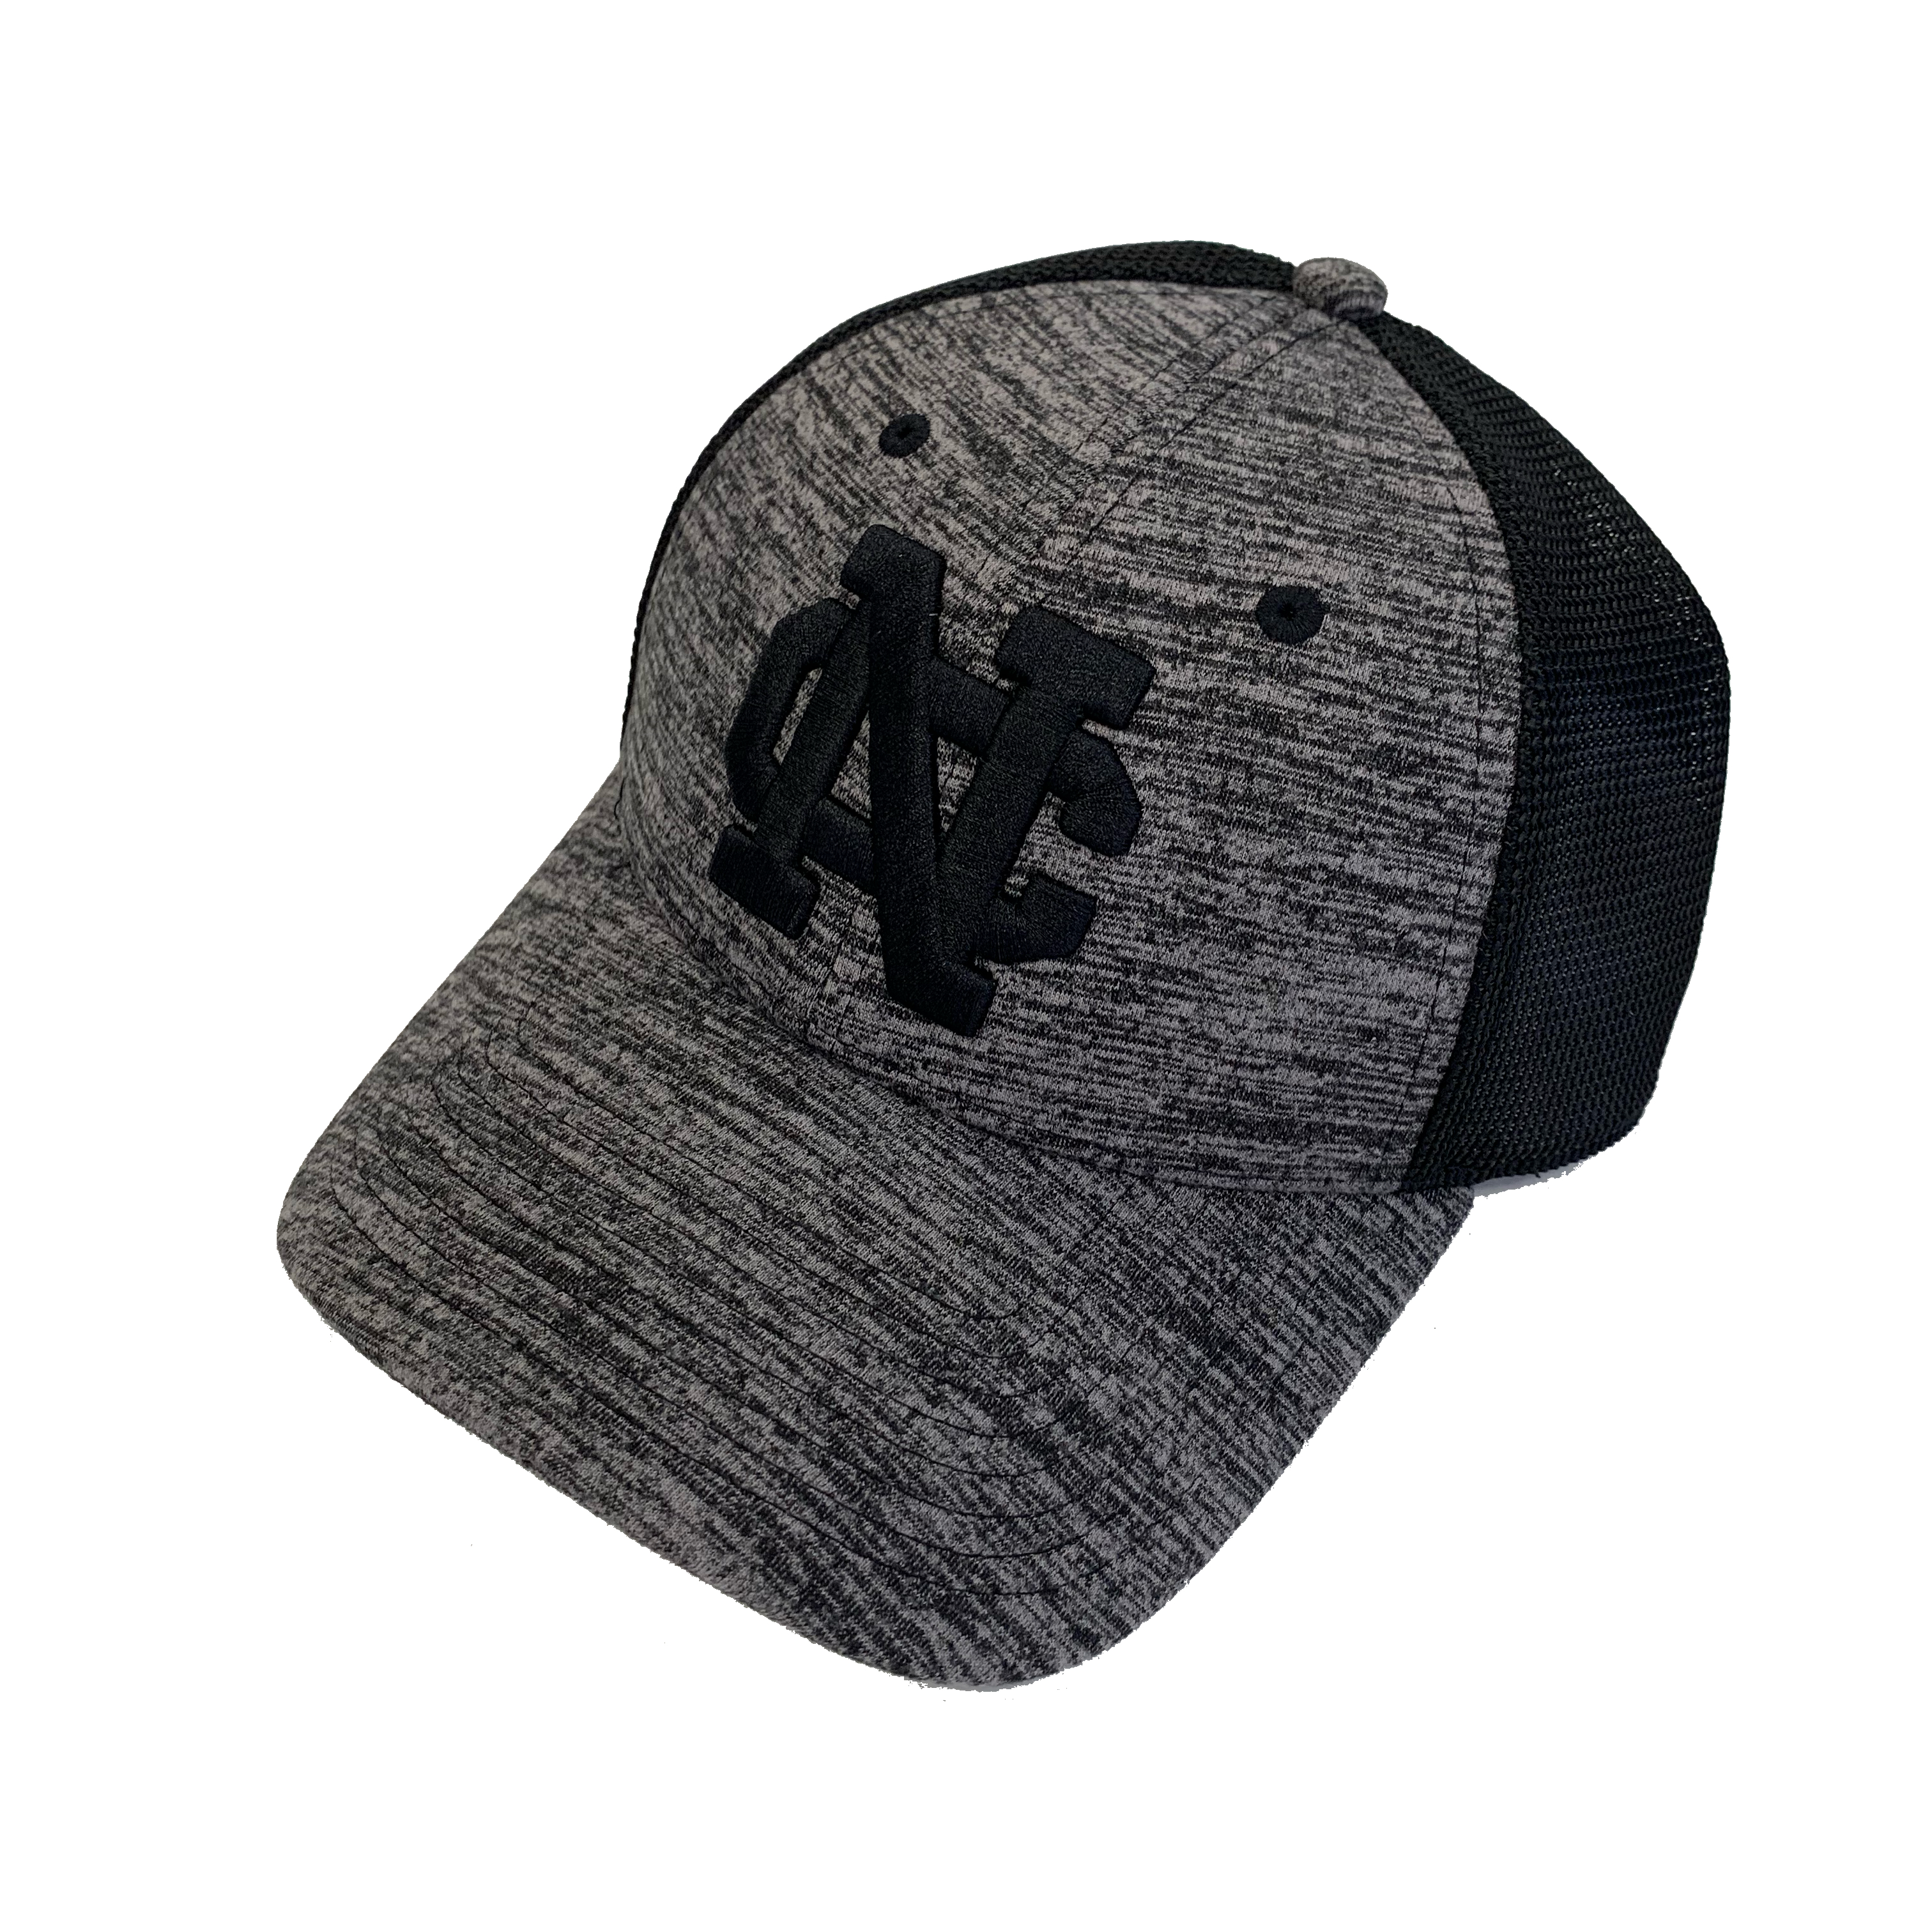 Image for the Black Heather w/ Mesh NC hat by  The Game product